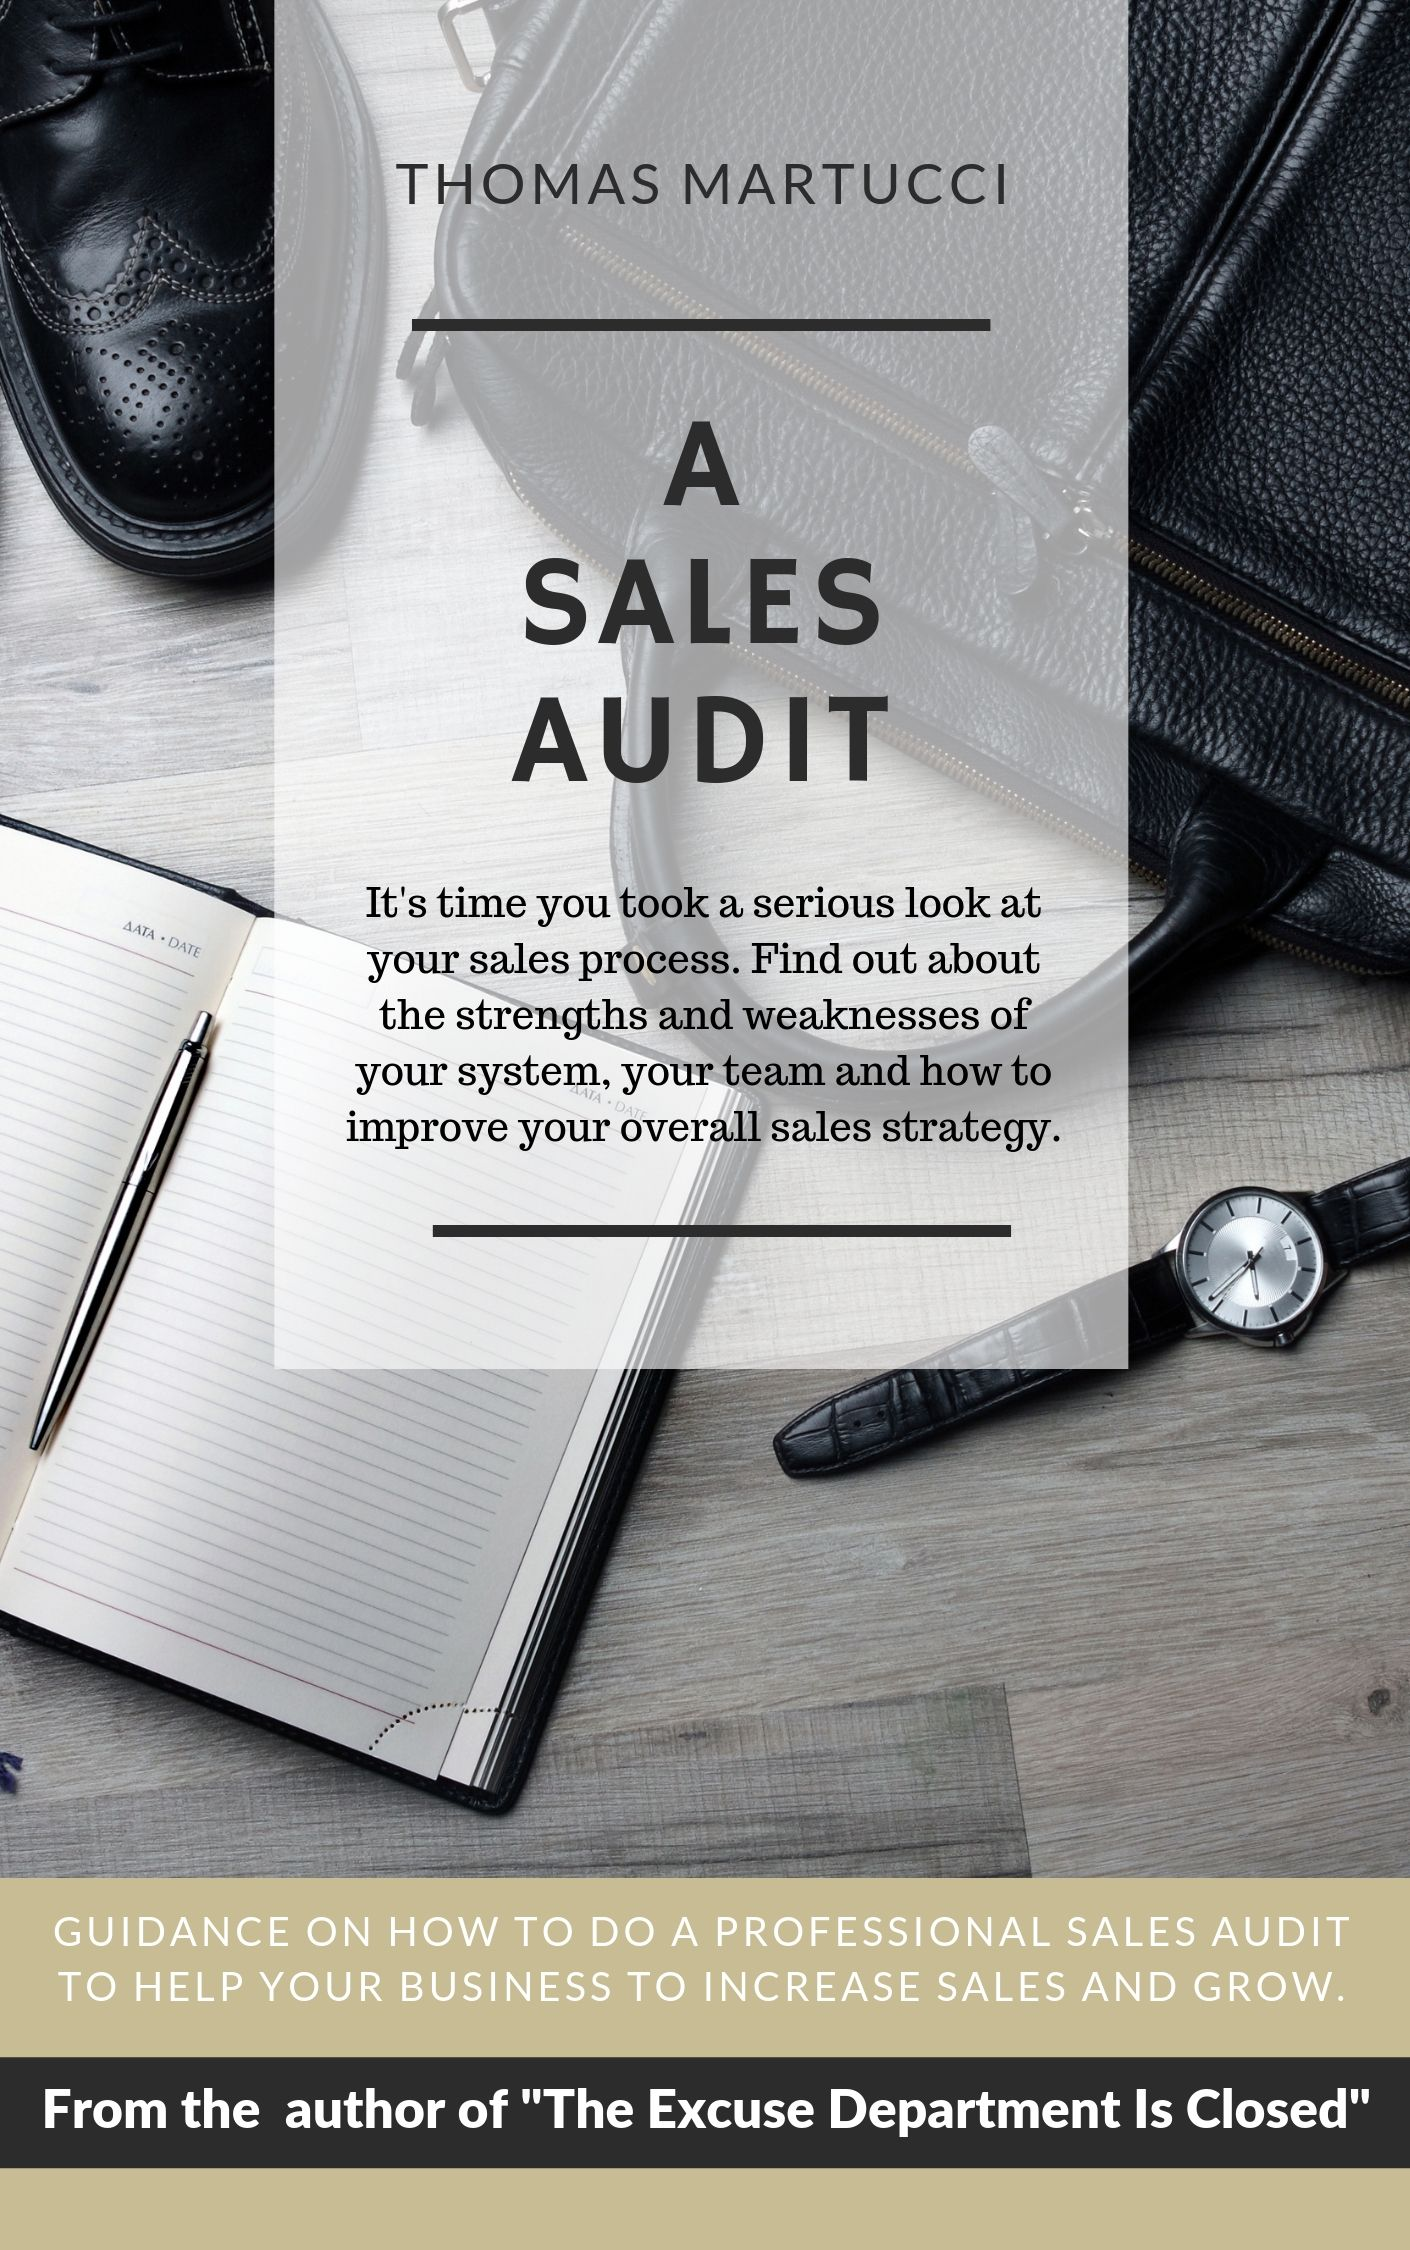 It's time you took a serious look at your sales process. Find out about the strengths and weaknesses of your system, your team and how to improve your overall sales strategy.This E-book will give you guidance to do a professional sales audit and help your business to increase sales and grow. To receive your ebook, fill in the form below. -